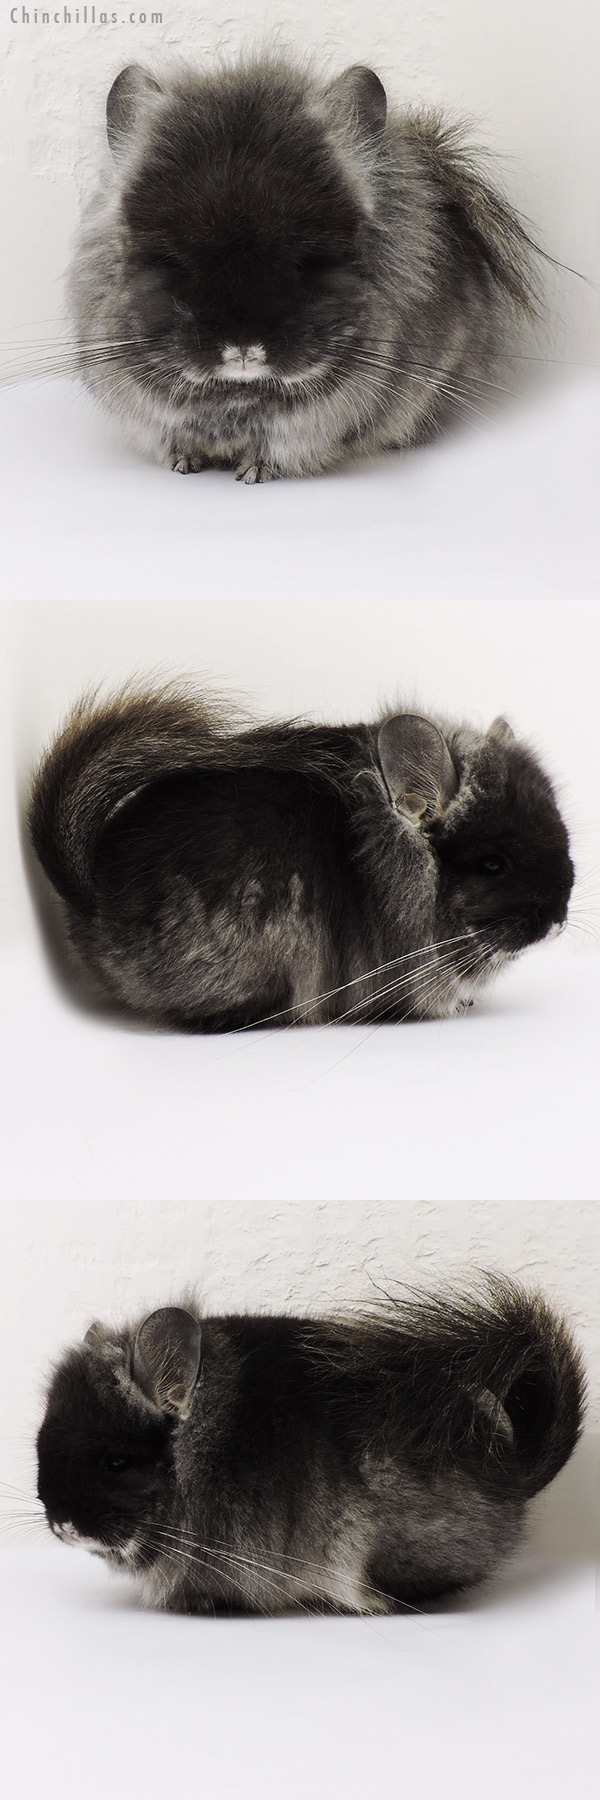 15229 Exceptional Black Velvet CCCU Royal Persian Angora Male w/ Lion Mane & Ear Tufts Chinchilla